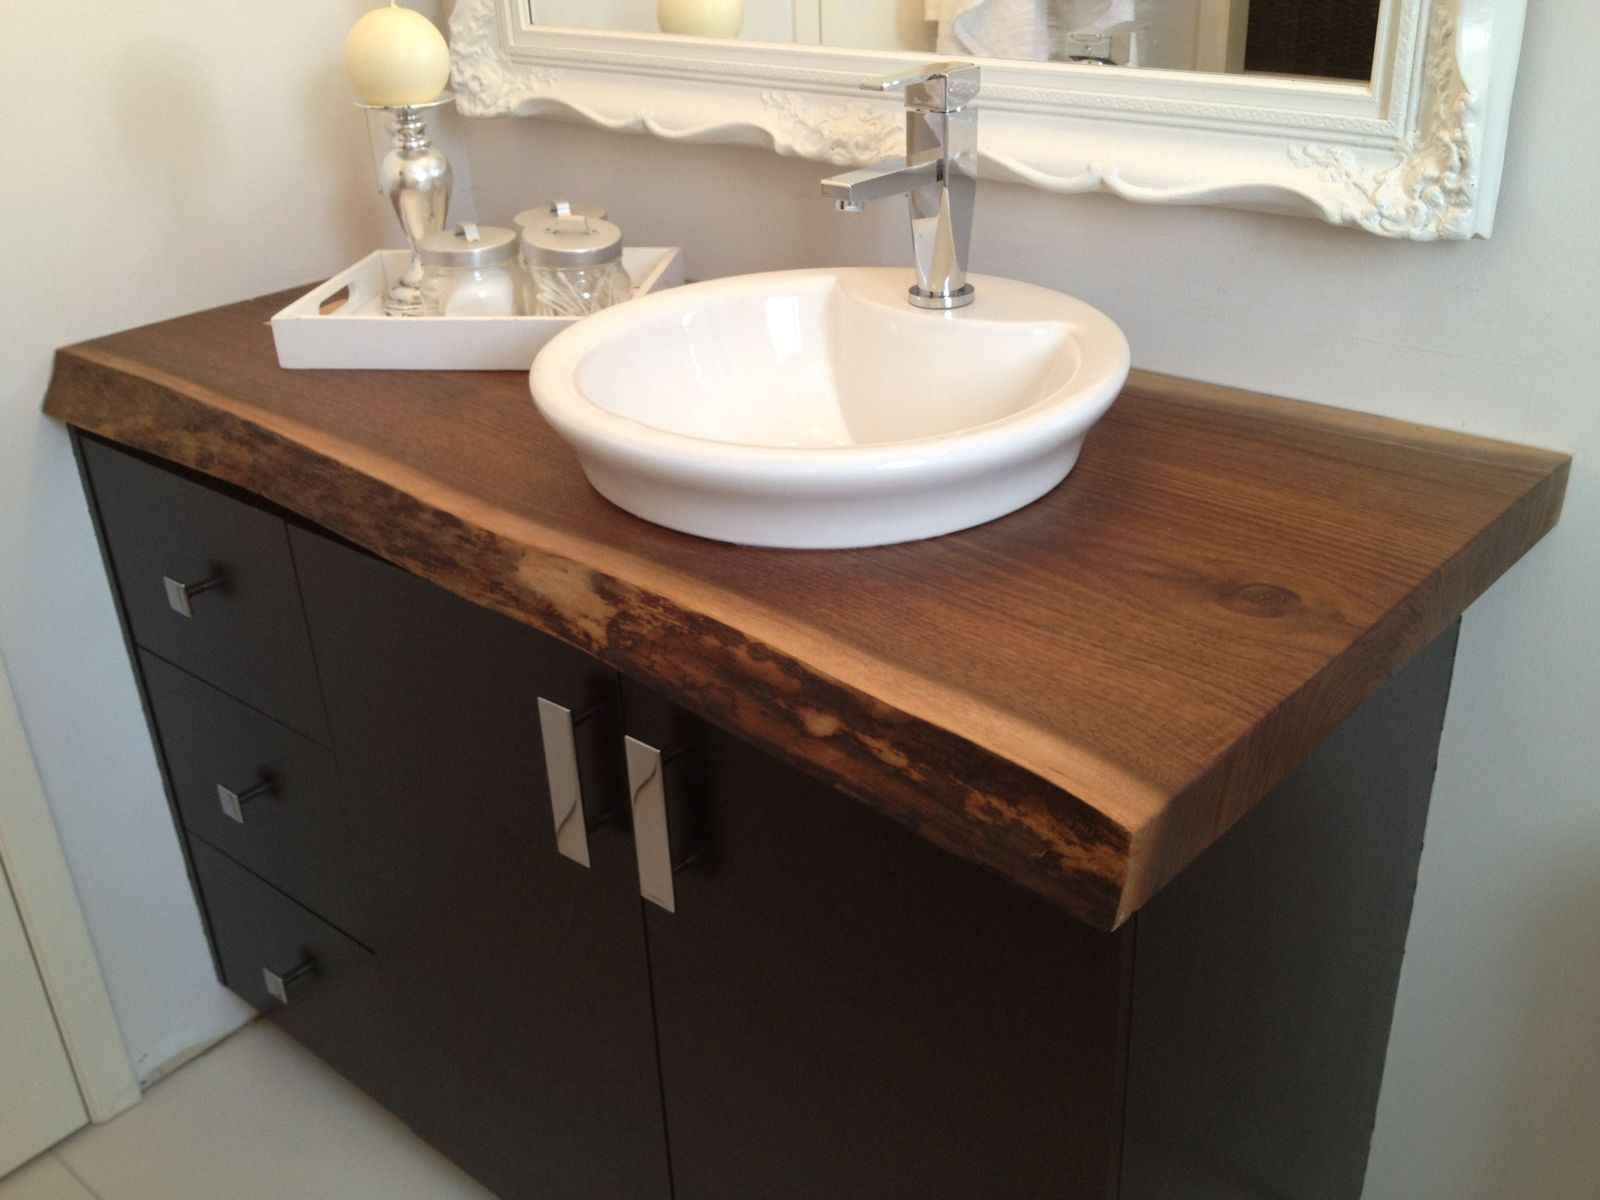 Hand Made Live Edge Black Walnut Bathroom Countertop By Bois Design C